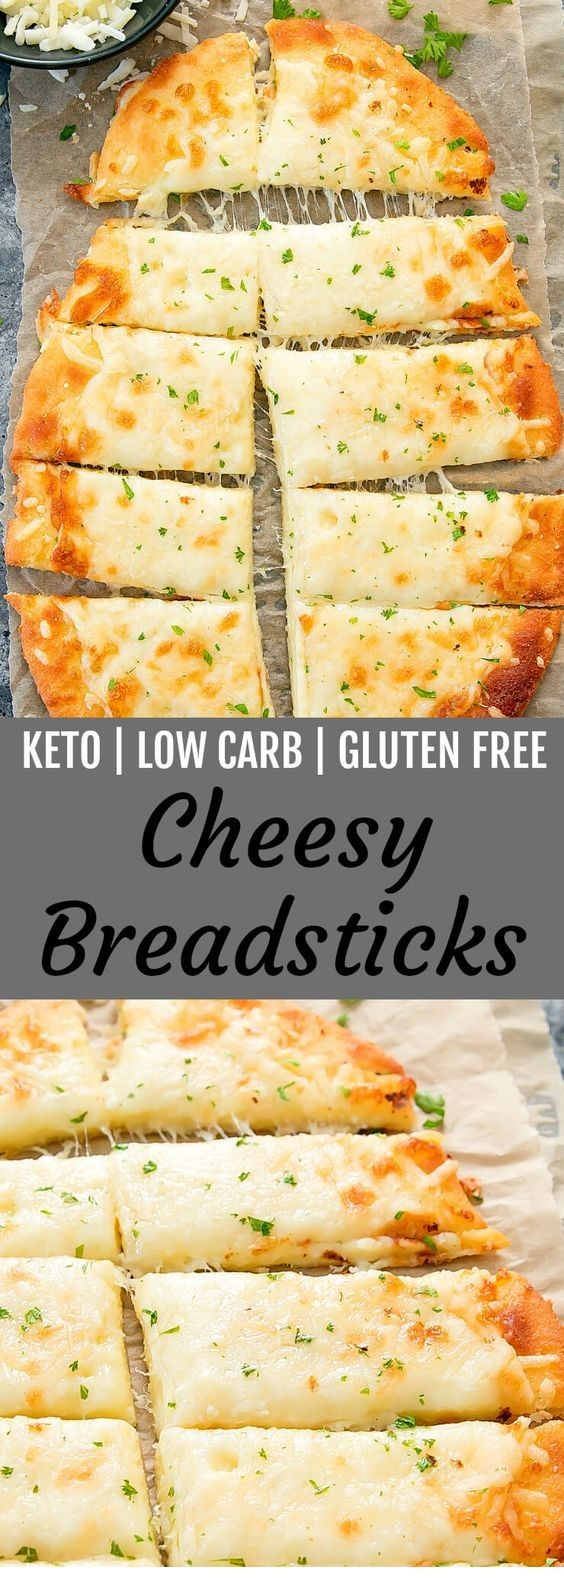 KETO BREADSTICKS